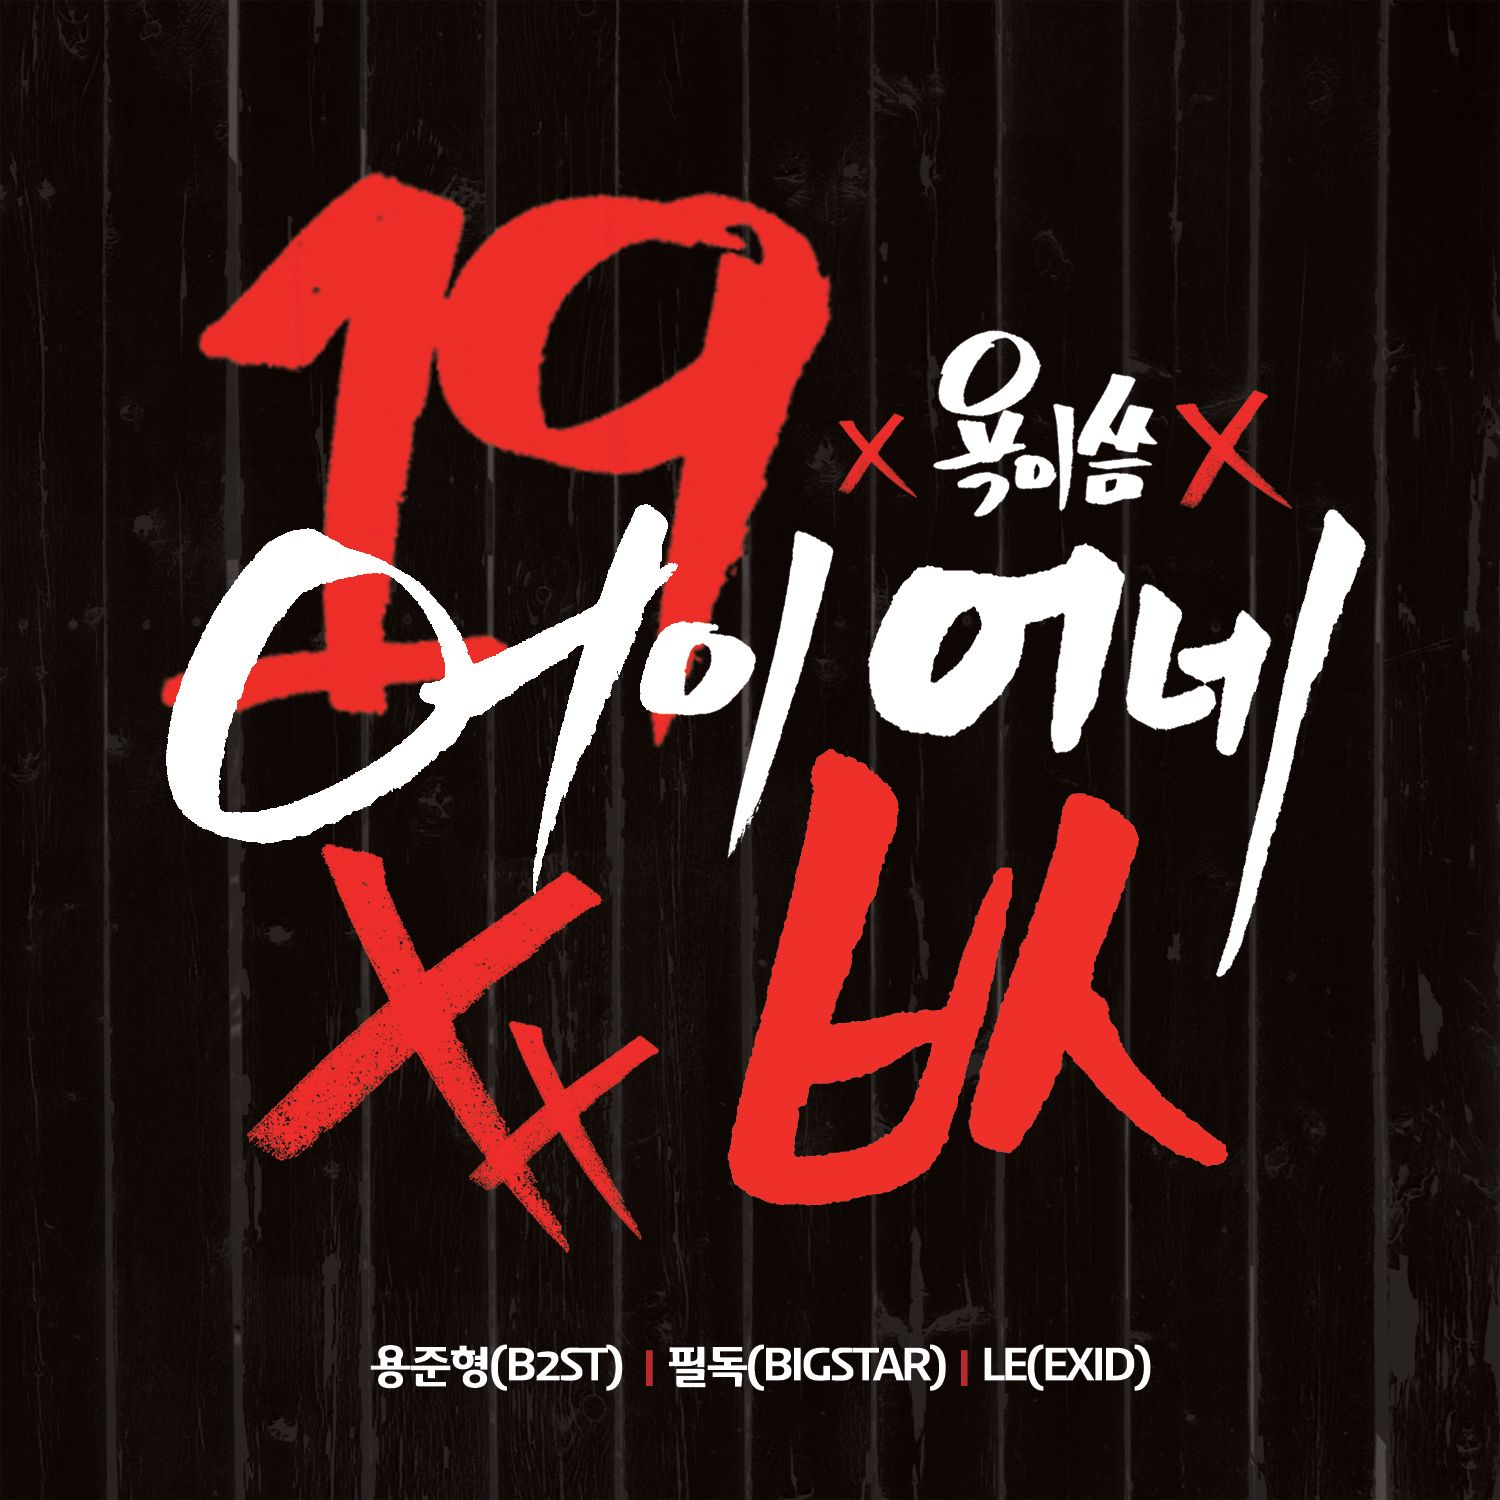 [Single] Jun Hyung (BEAST), Feeldog (BIGSTAR) & LE (EXID) - You Got Some Nerve (Dirty ver.) [19+]